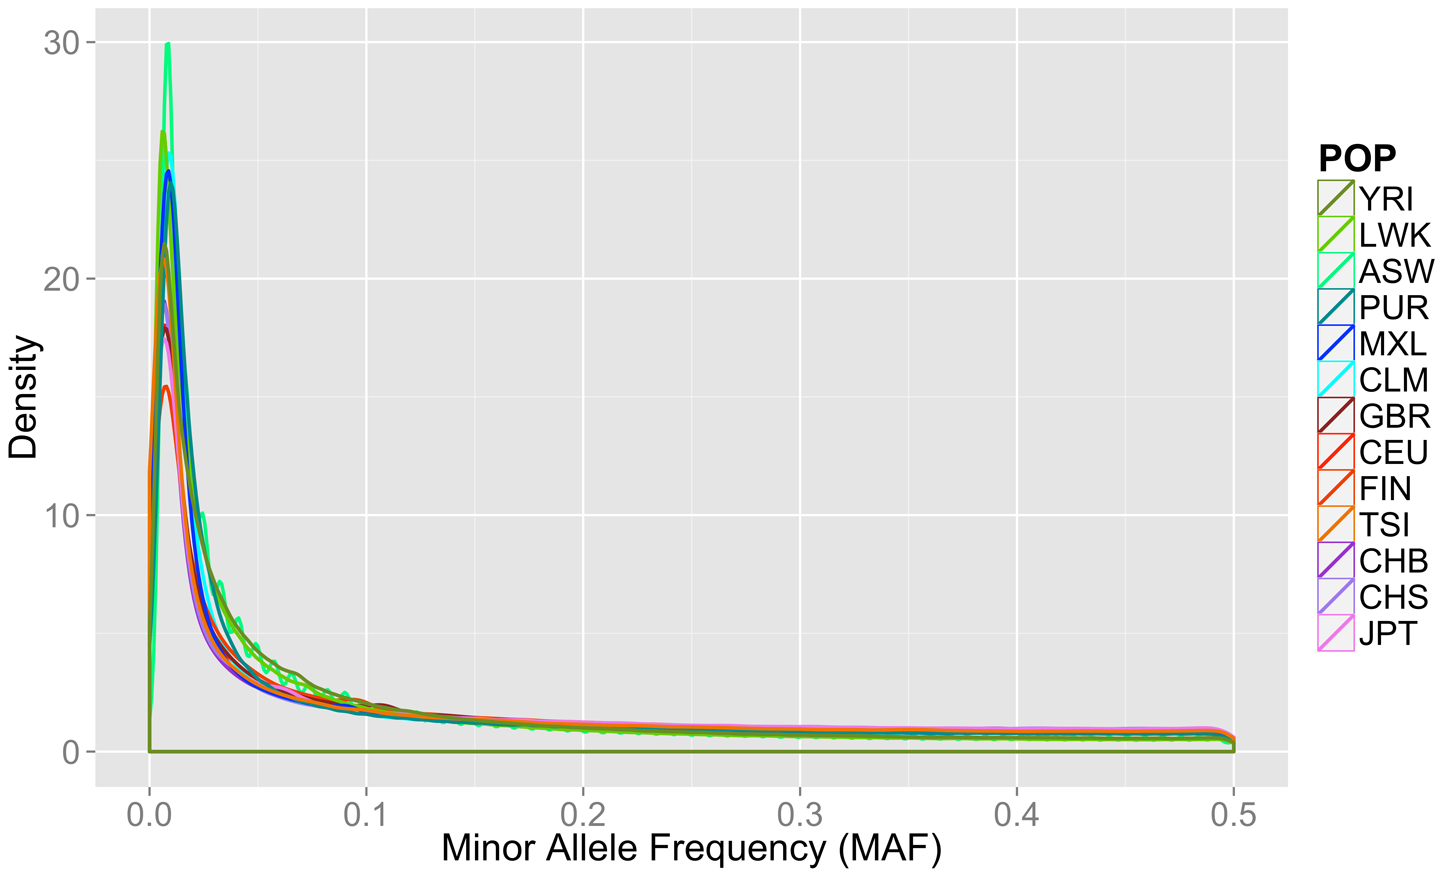 Minor allele frequency distribution on autosomal chromosomes for 13 1000 Genomes Project Phase I populations.